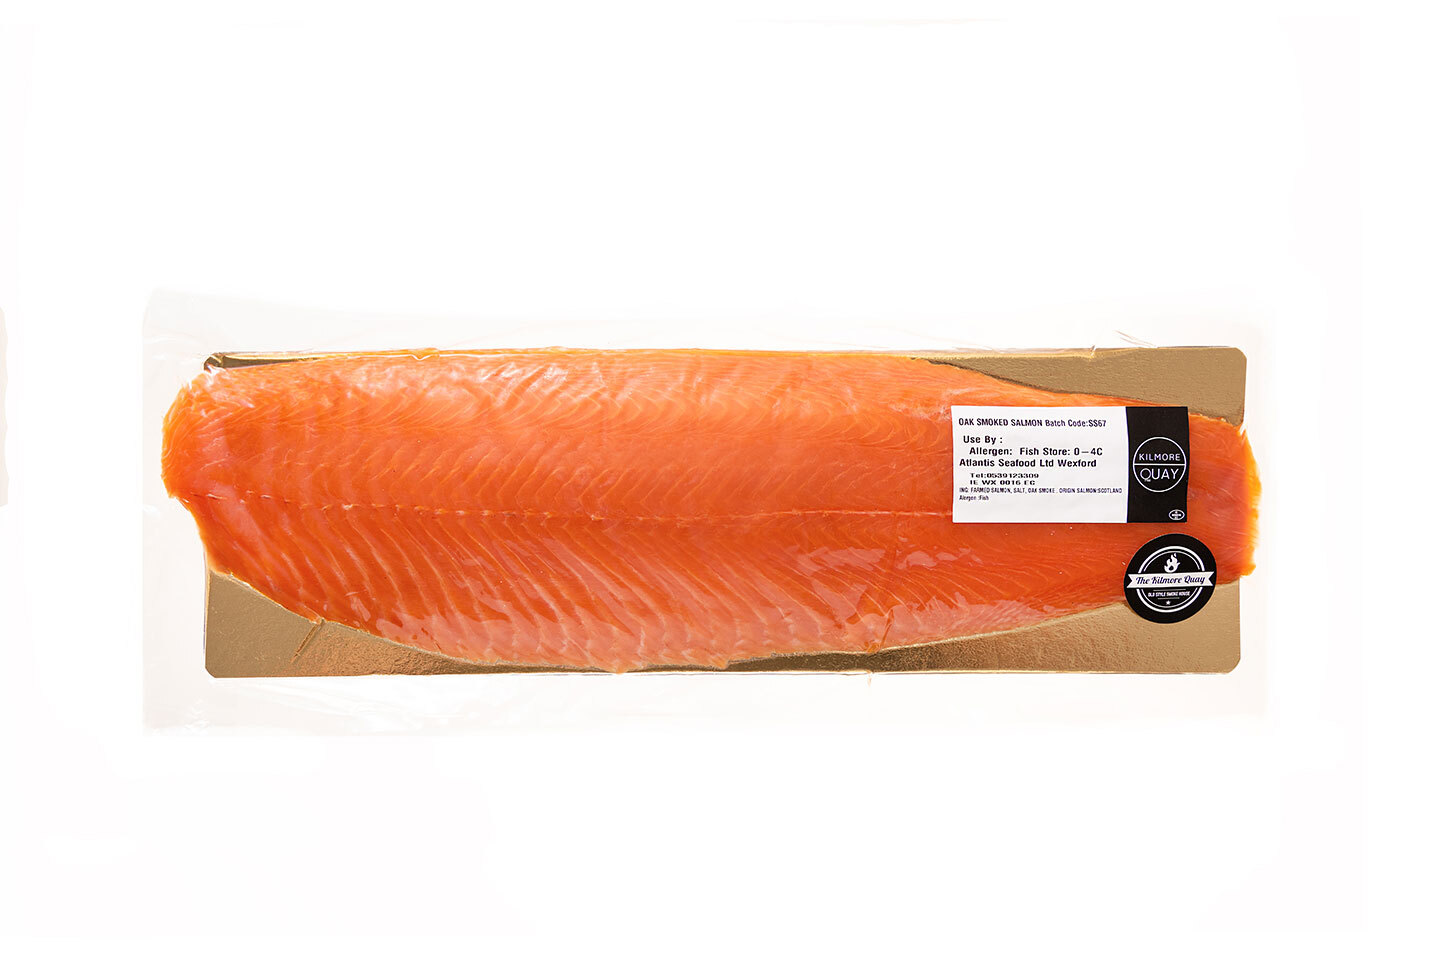 Kilmore Quay Oak Smoked Salmon